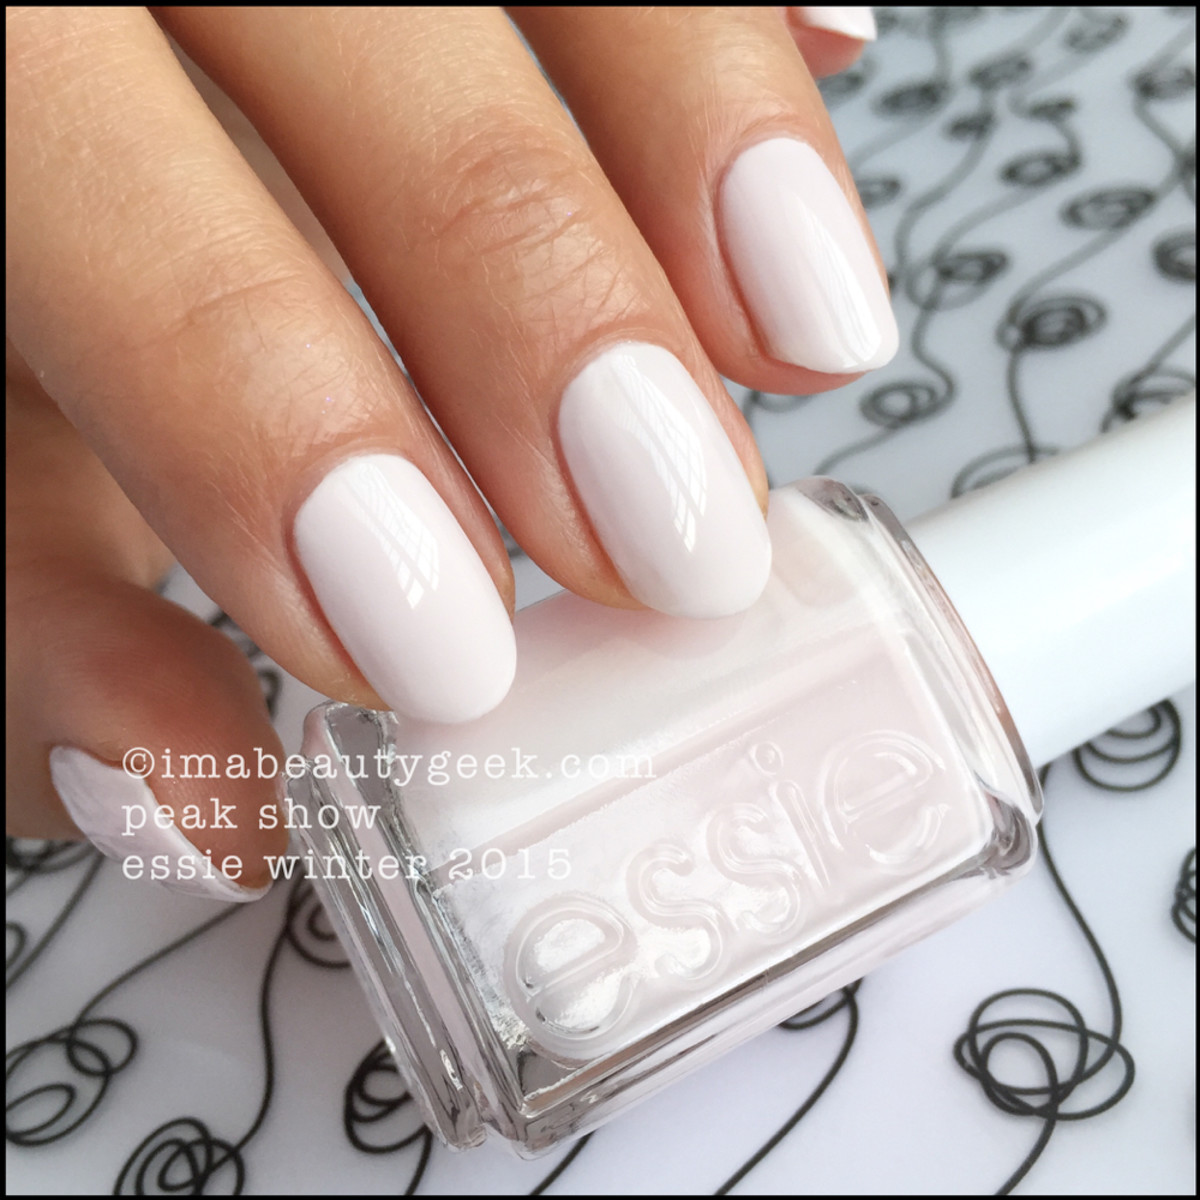 Essie Winter 2015 Collection_Essie Peak Show